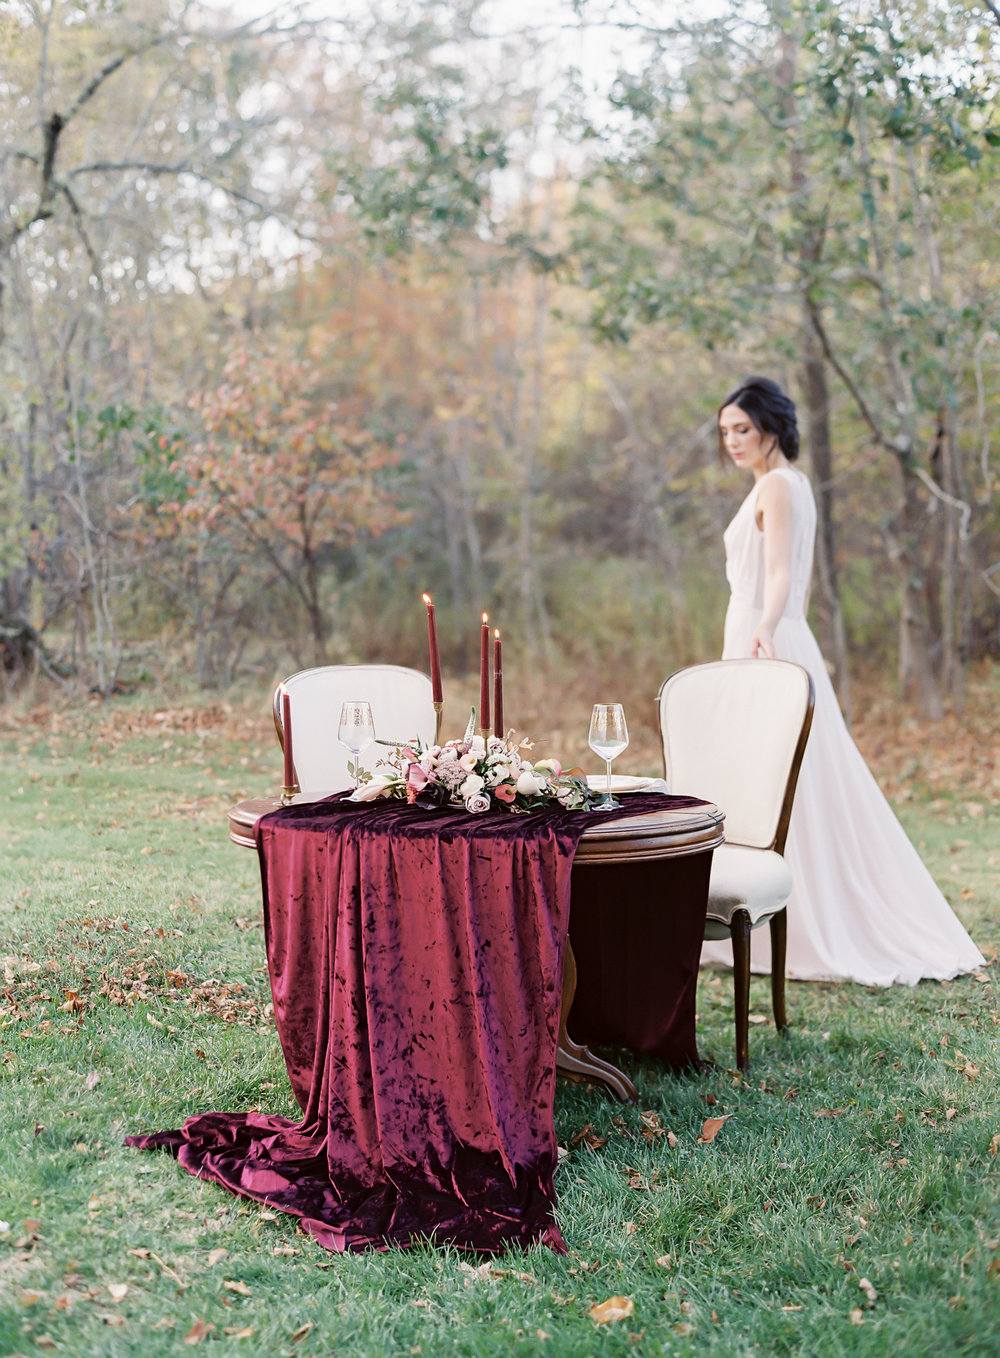 Jacqueline Anne Photography - Forest Editorial - Autumn editorial ON FILM-31.jpg